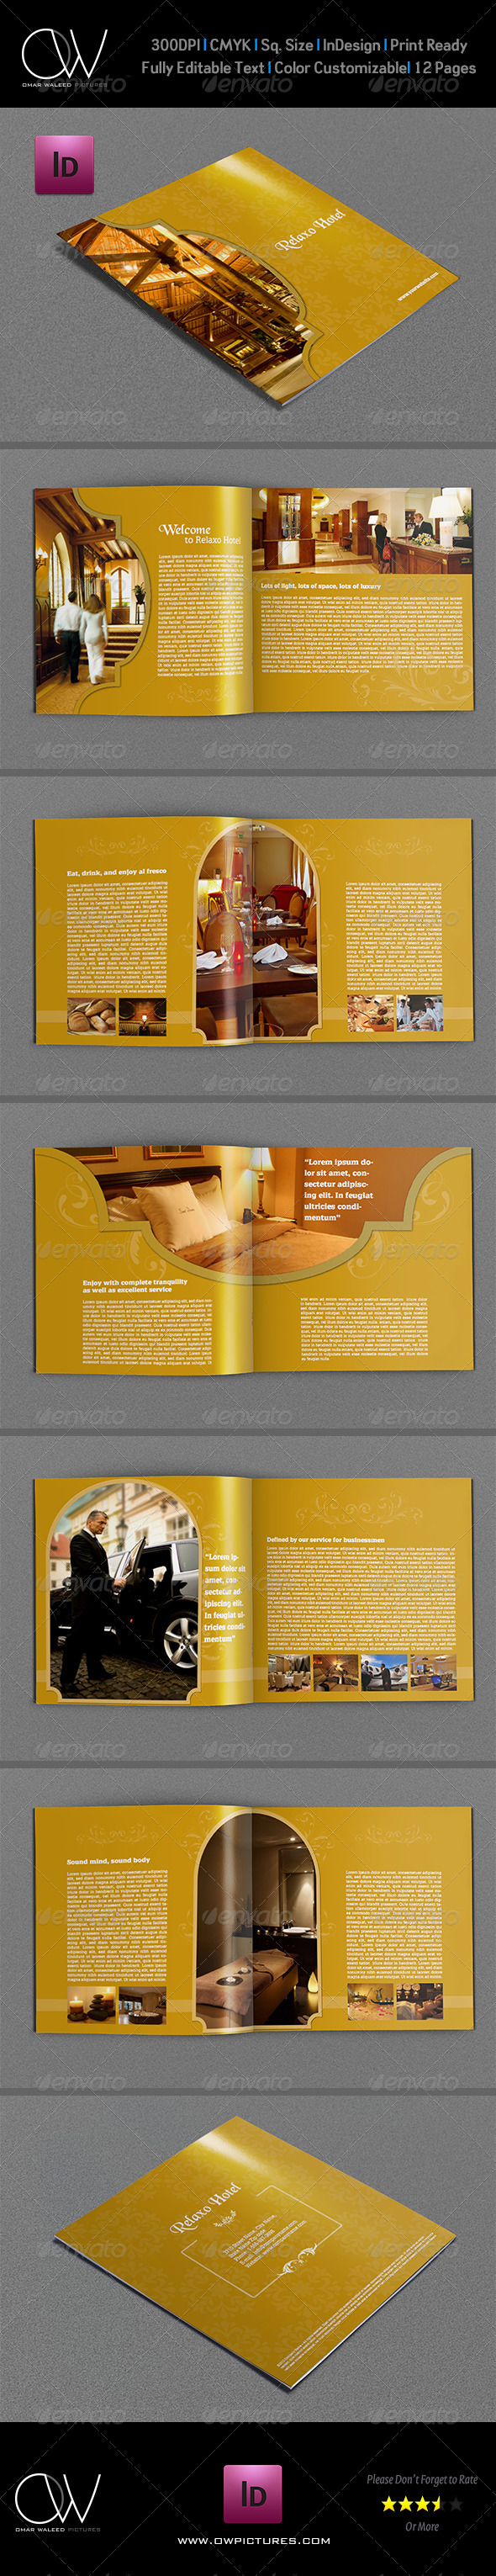 Hotel and Motel Brochure Template - 12 Pages - Brochures Print Templates